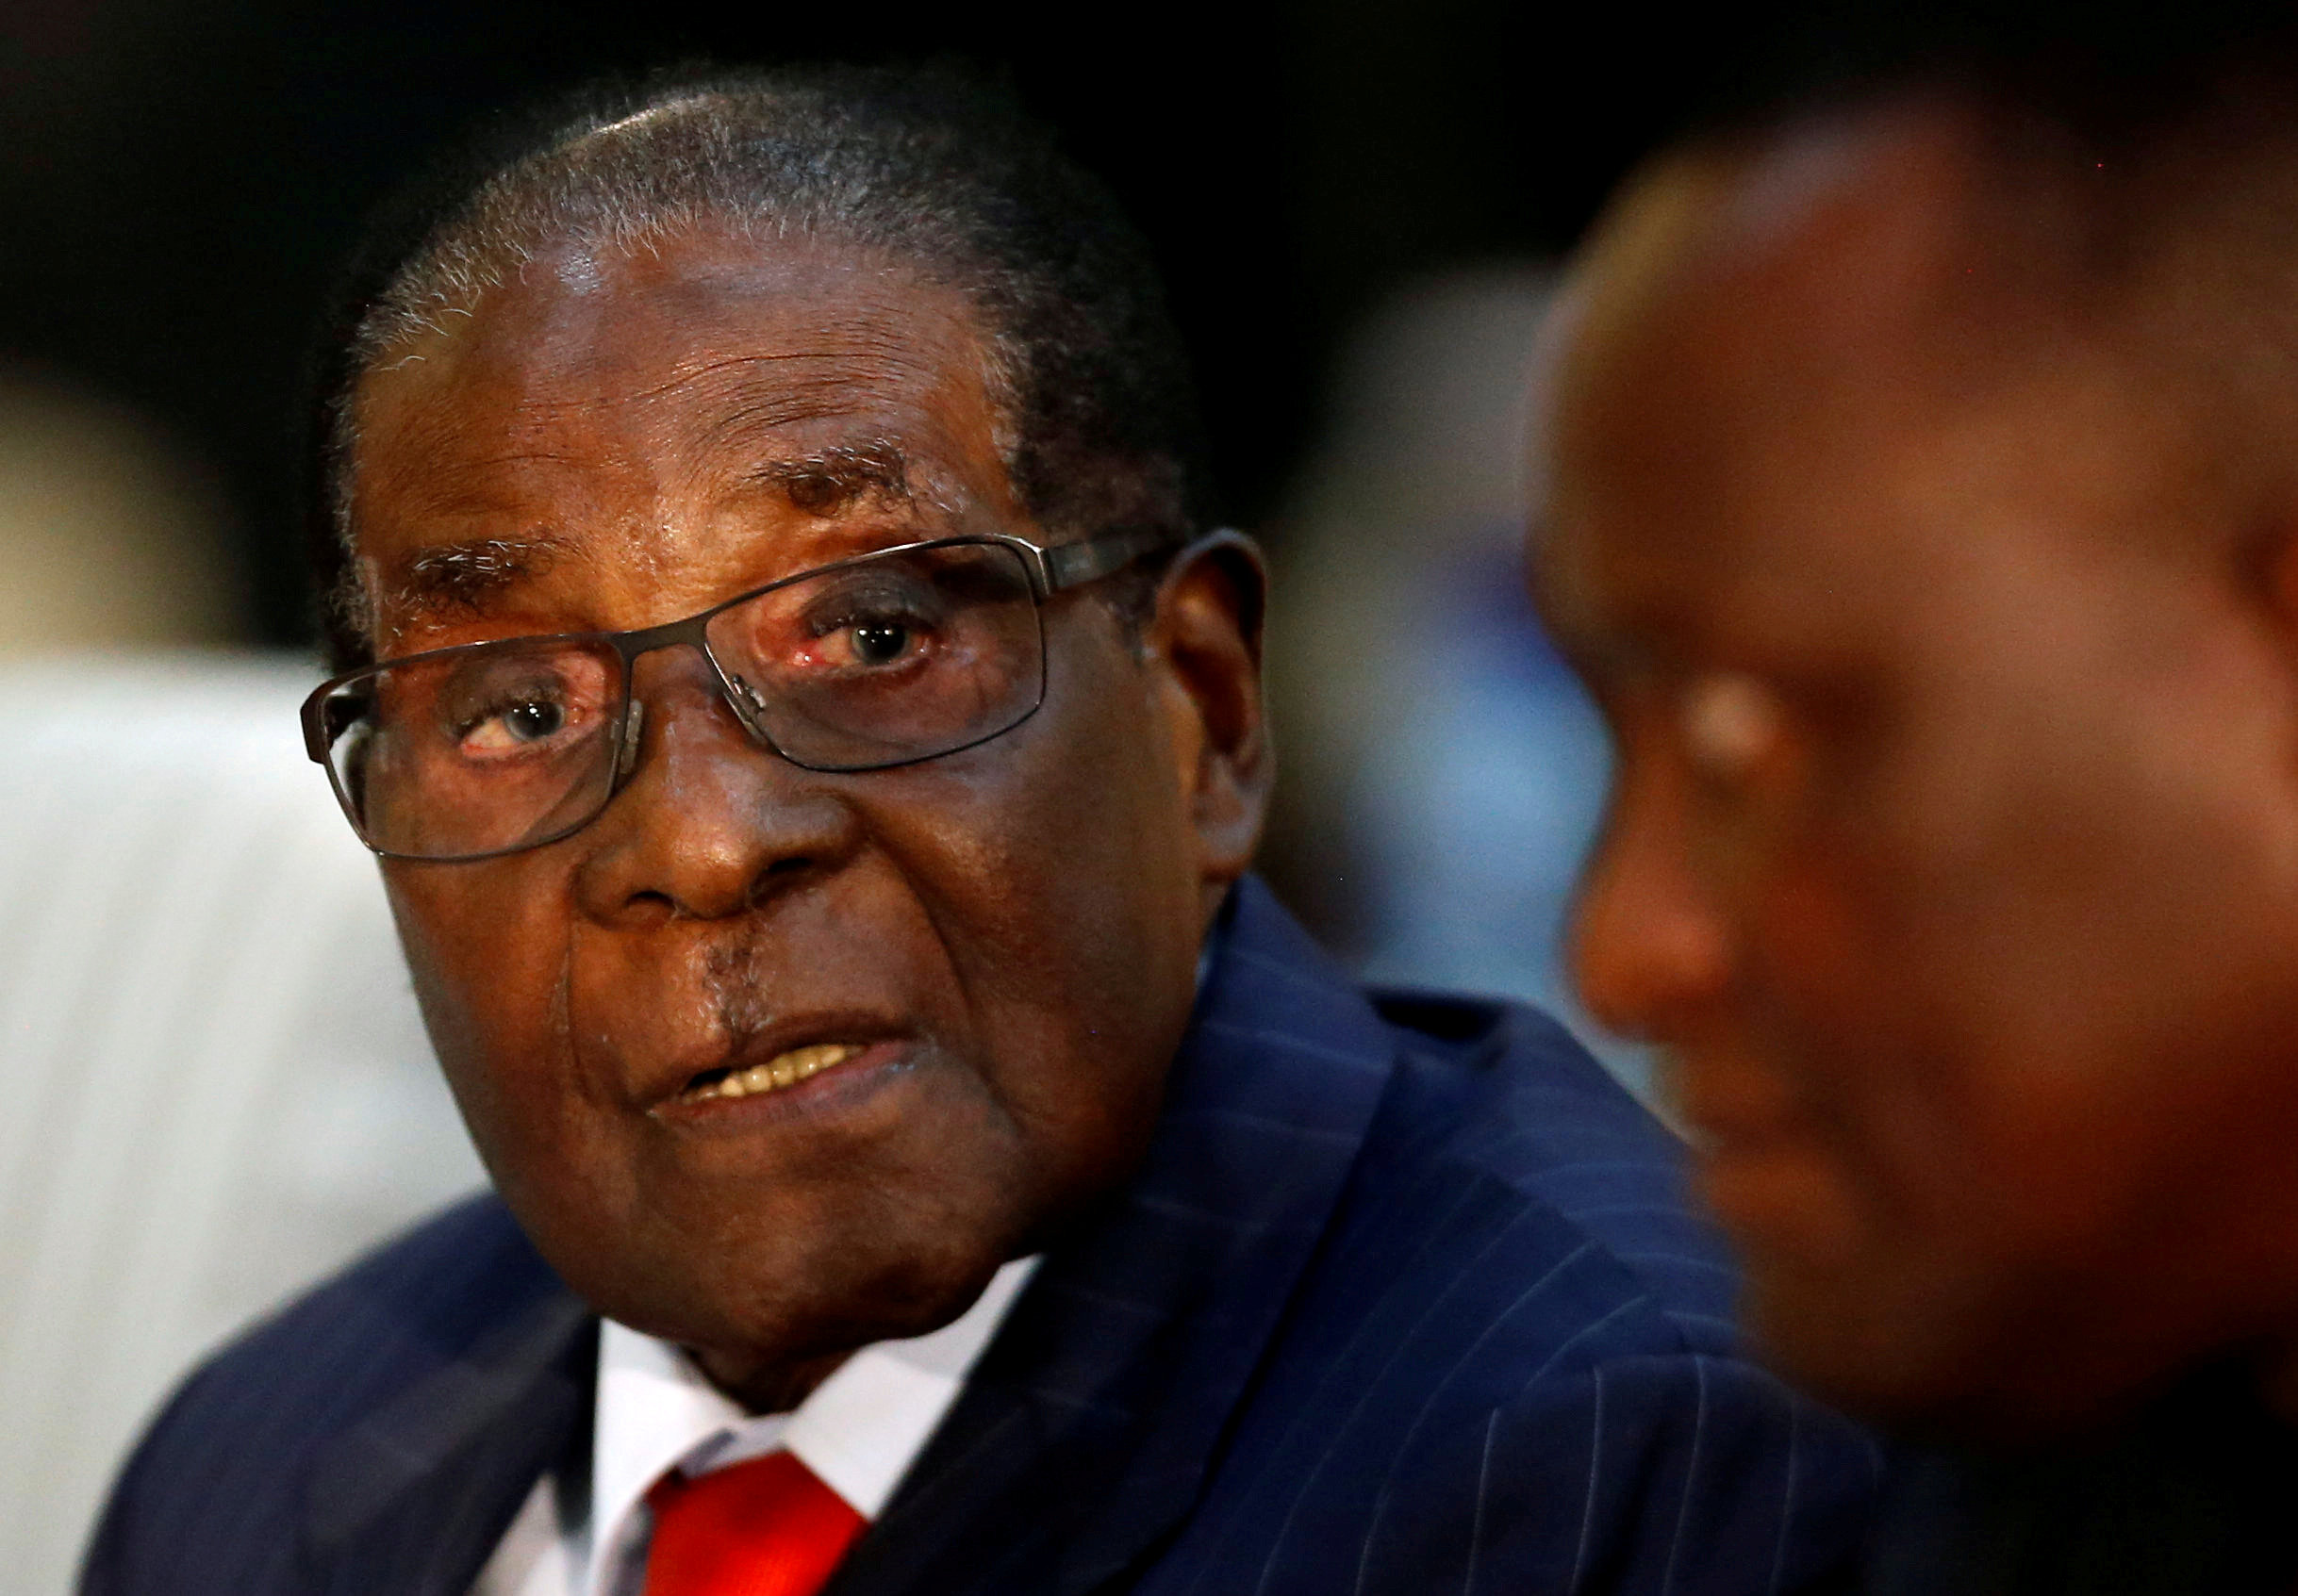 Zimbabwean president Mugabe removed as WHO goodwill ambassador after outrage